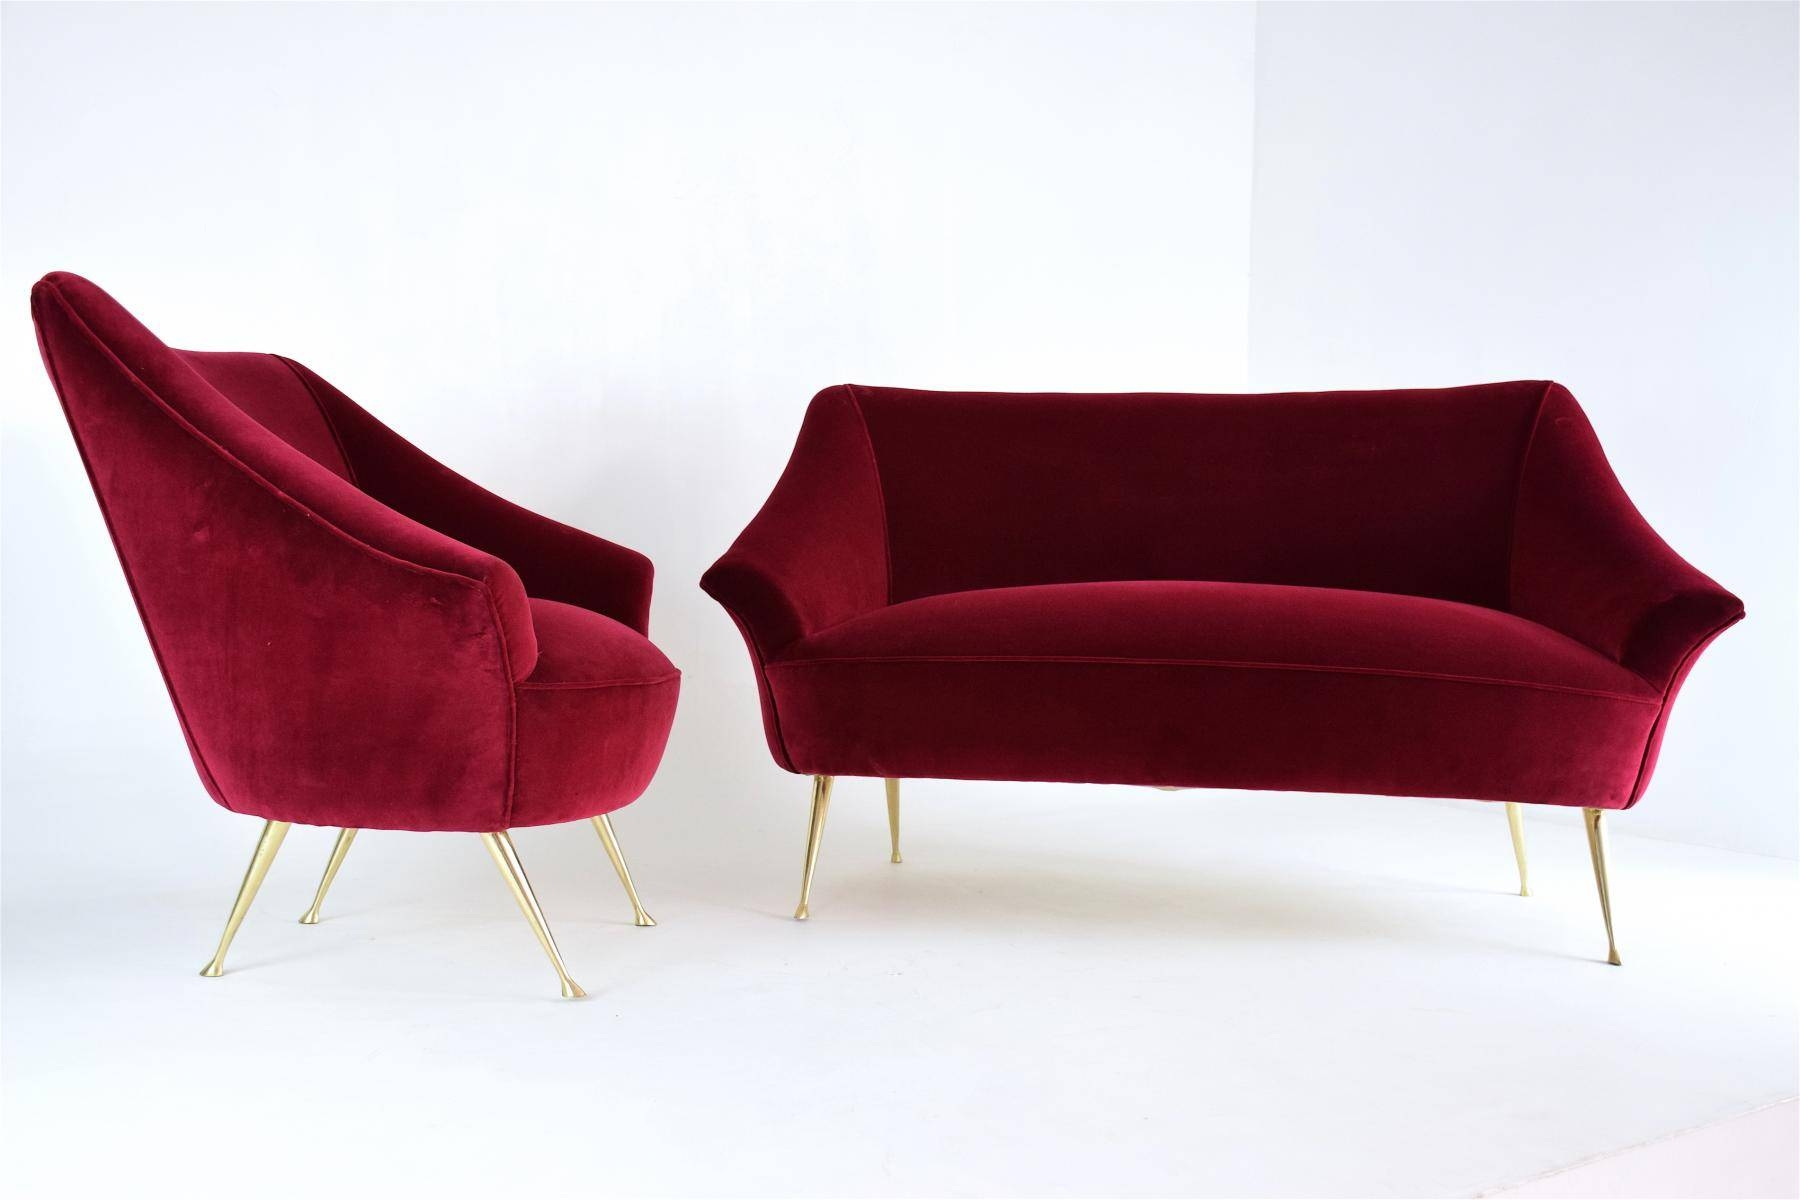 Vintage Italian Red Two-Seater Sofa And Armchair Set, 1950S, Set with regard to Two Seater Chairs (Image 26 of 30)